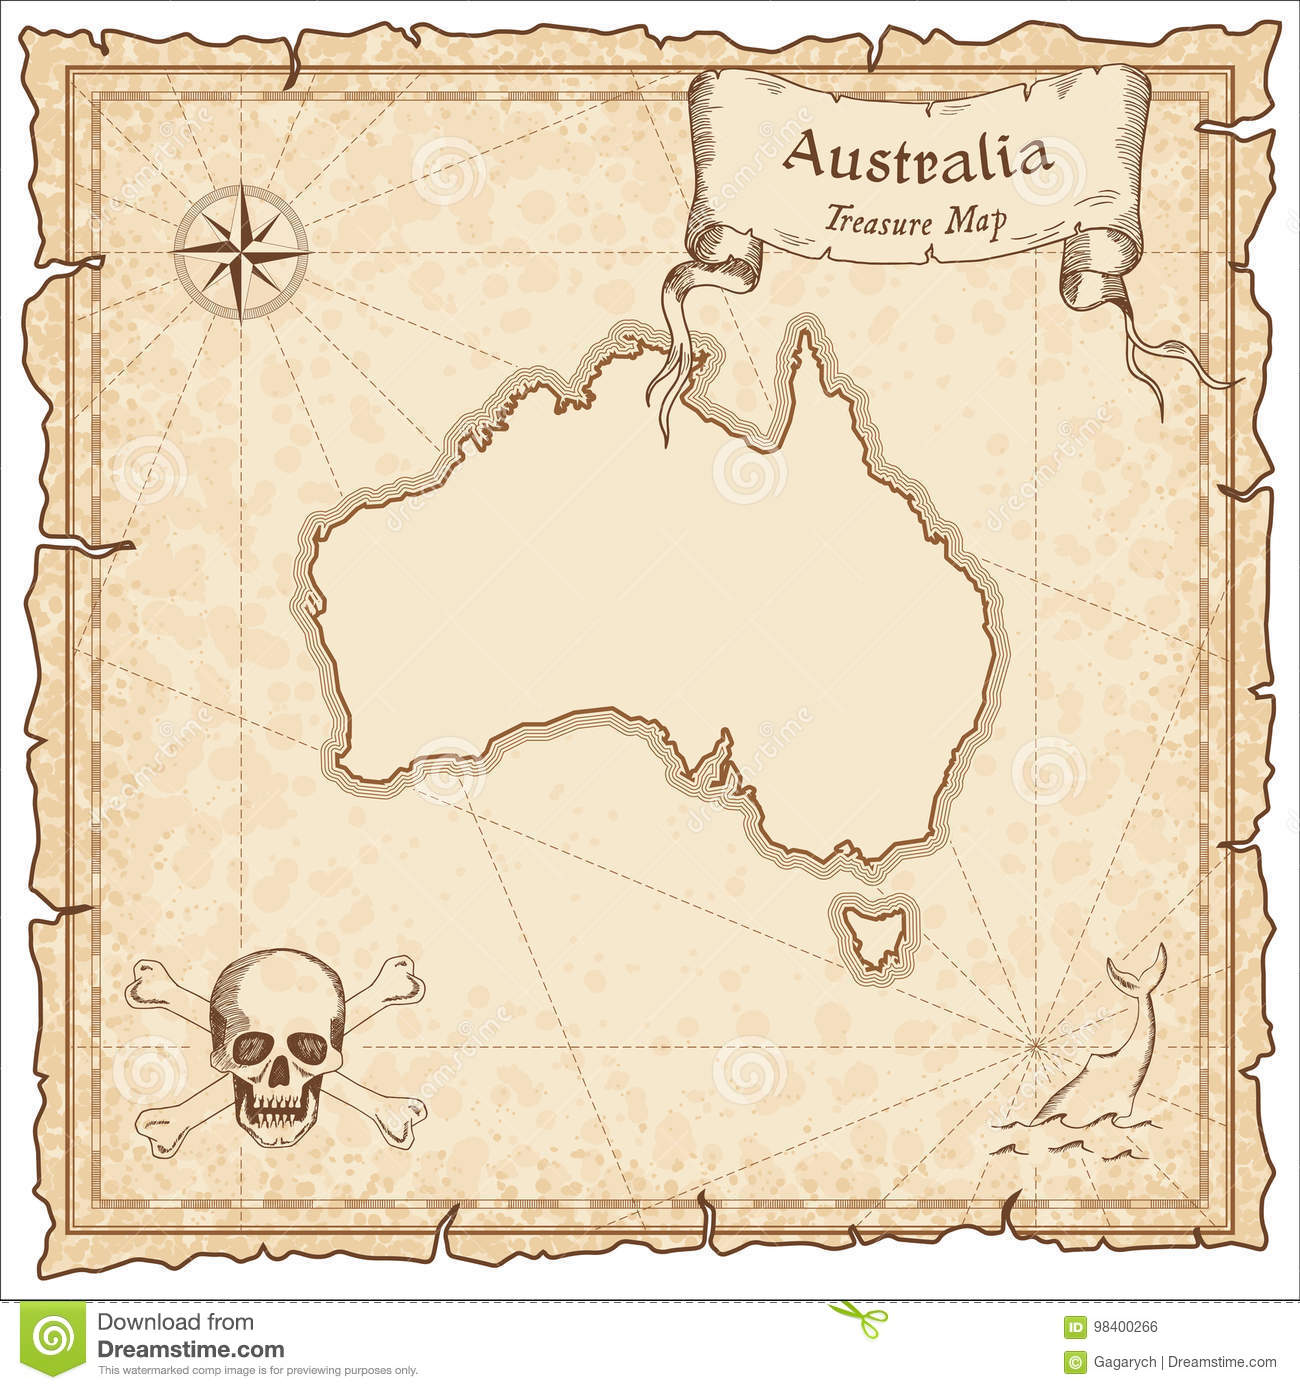 Carte Australie Papier.Vieille Carte De Pirate D Australie Illustration De Vecteur